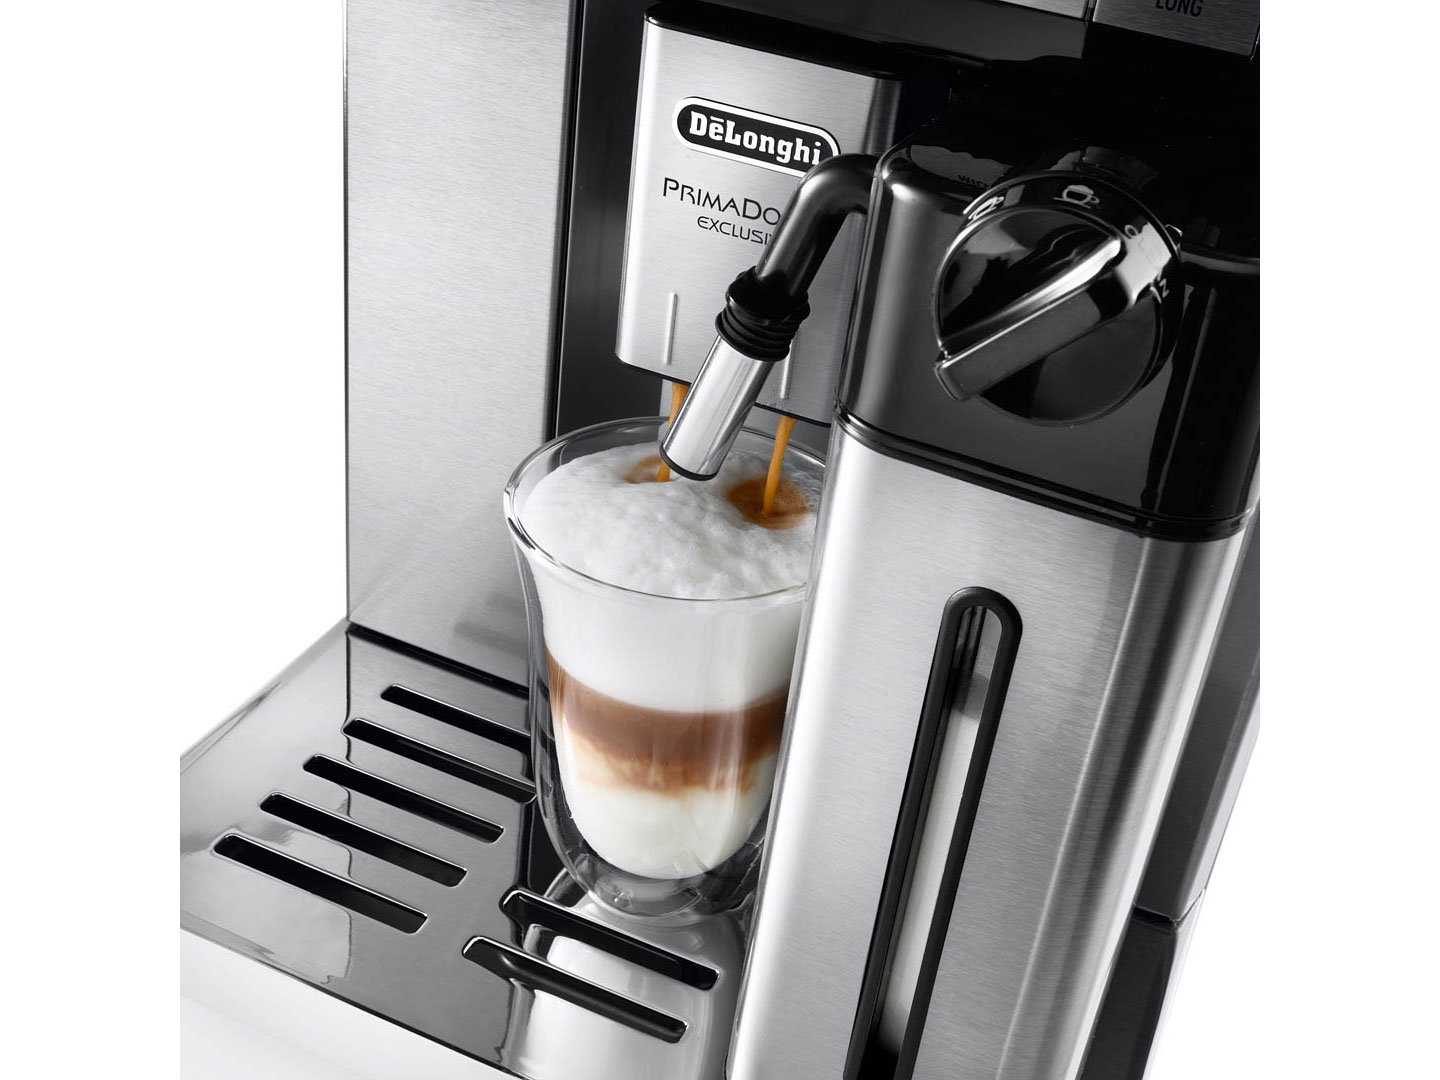 delonghi esam6900 prima donna exclusive one touch espresso machine espresso planet canada. Black Bedroom Furniture Sets. Home Design Ideas